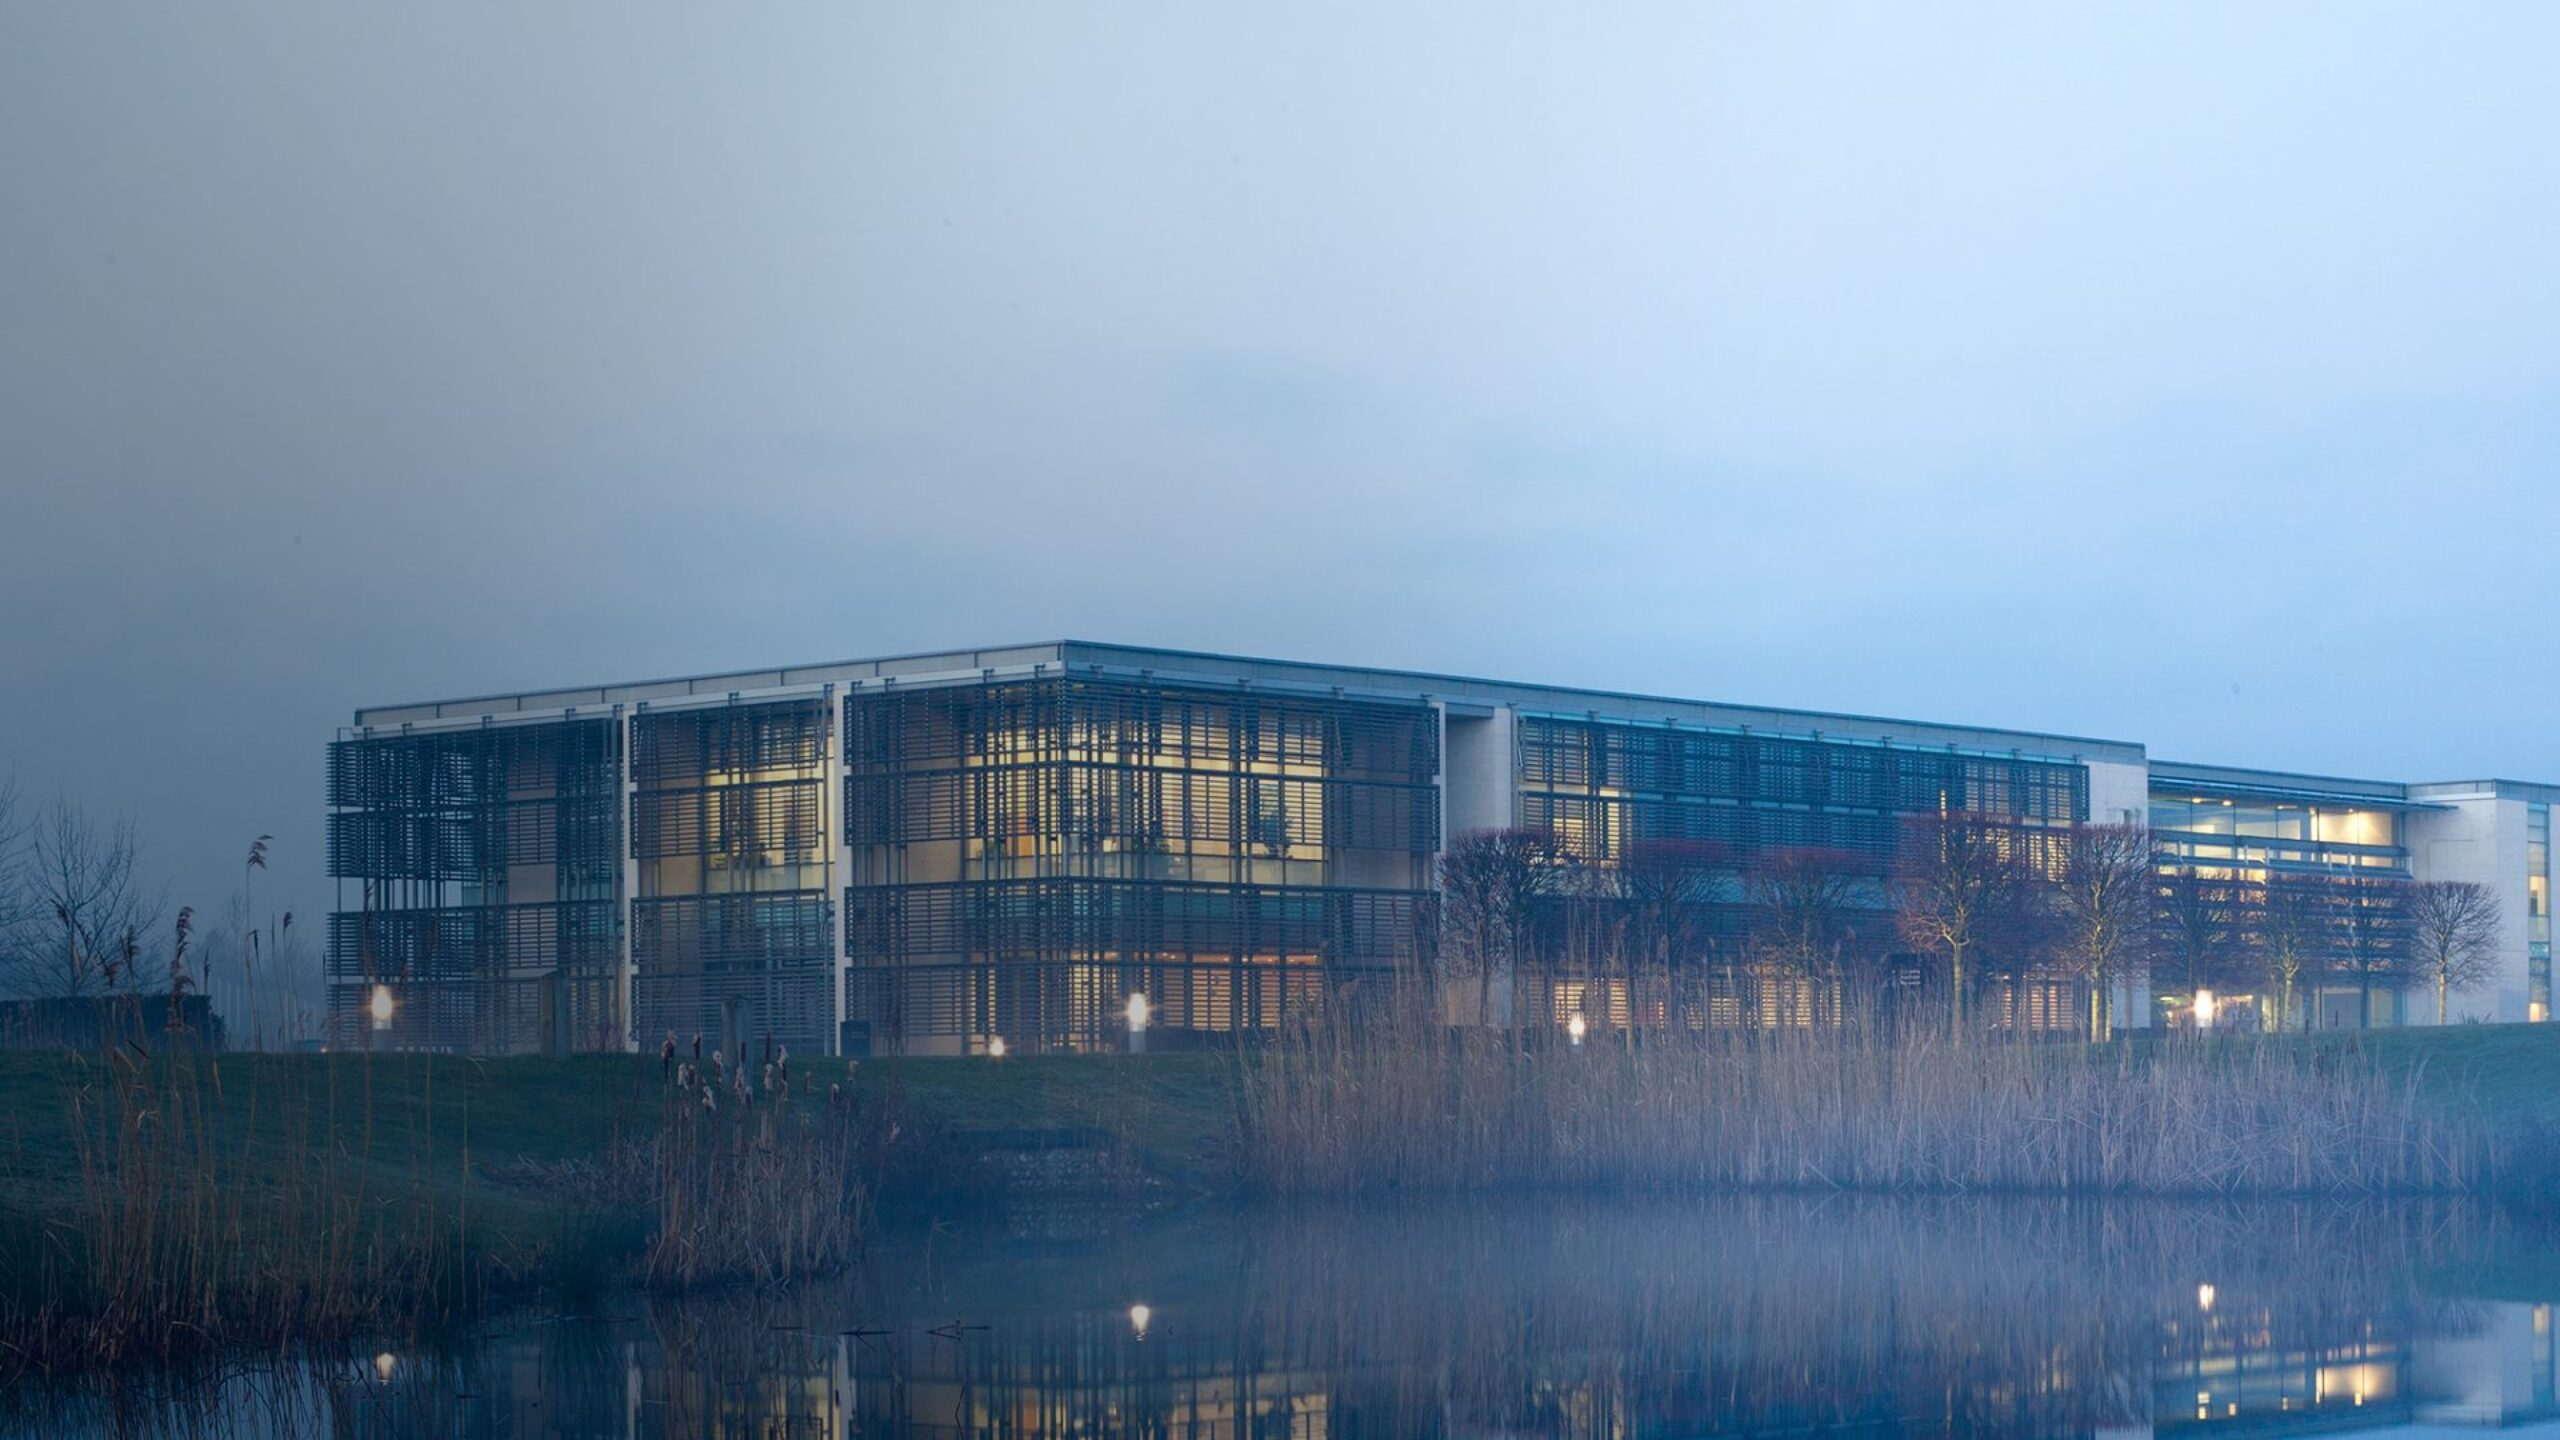 Rolls-Royce Motor Car's state-of-the-art manufacturing facility and headquarters in Goodwood